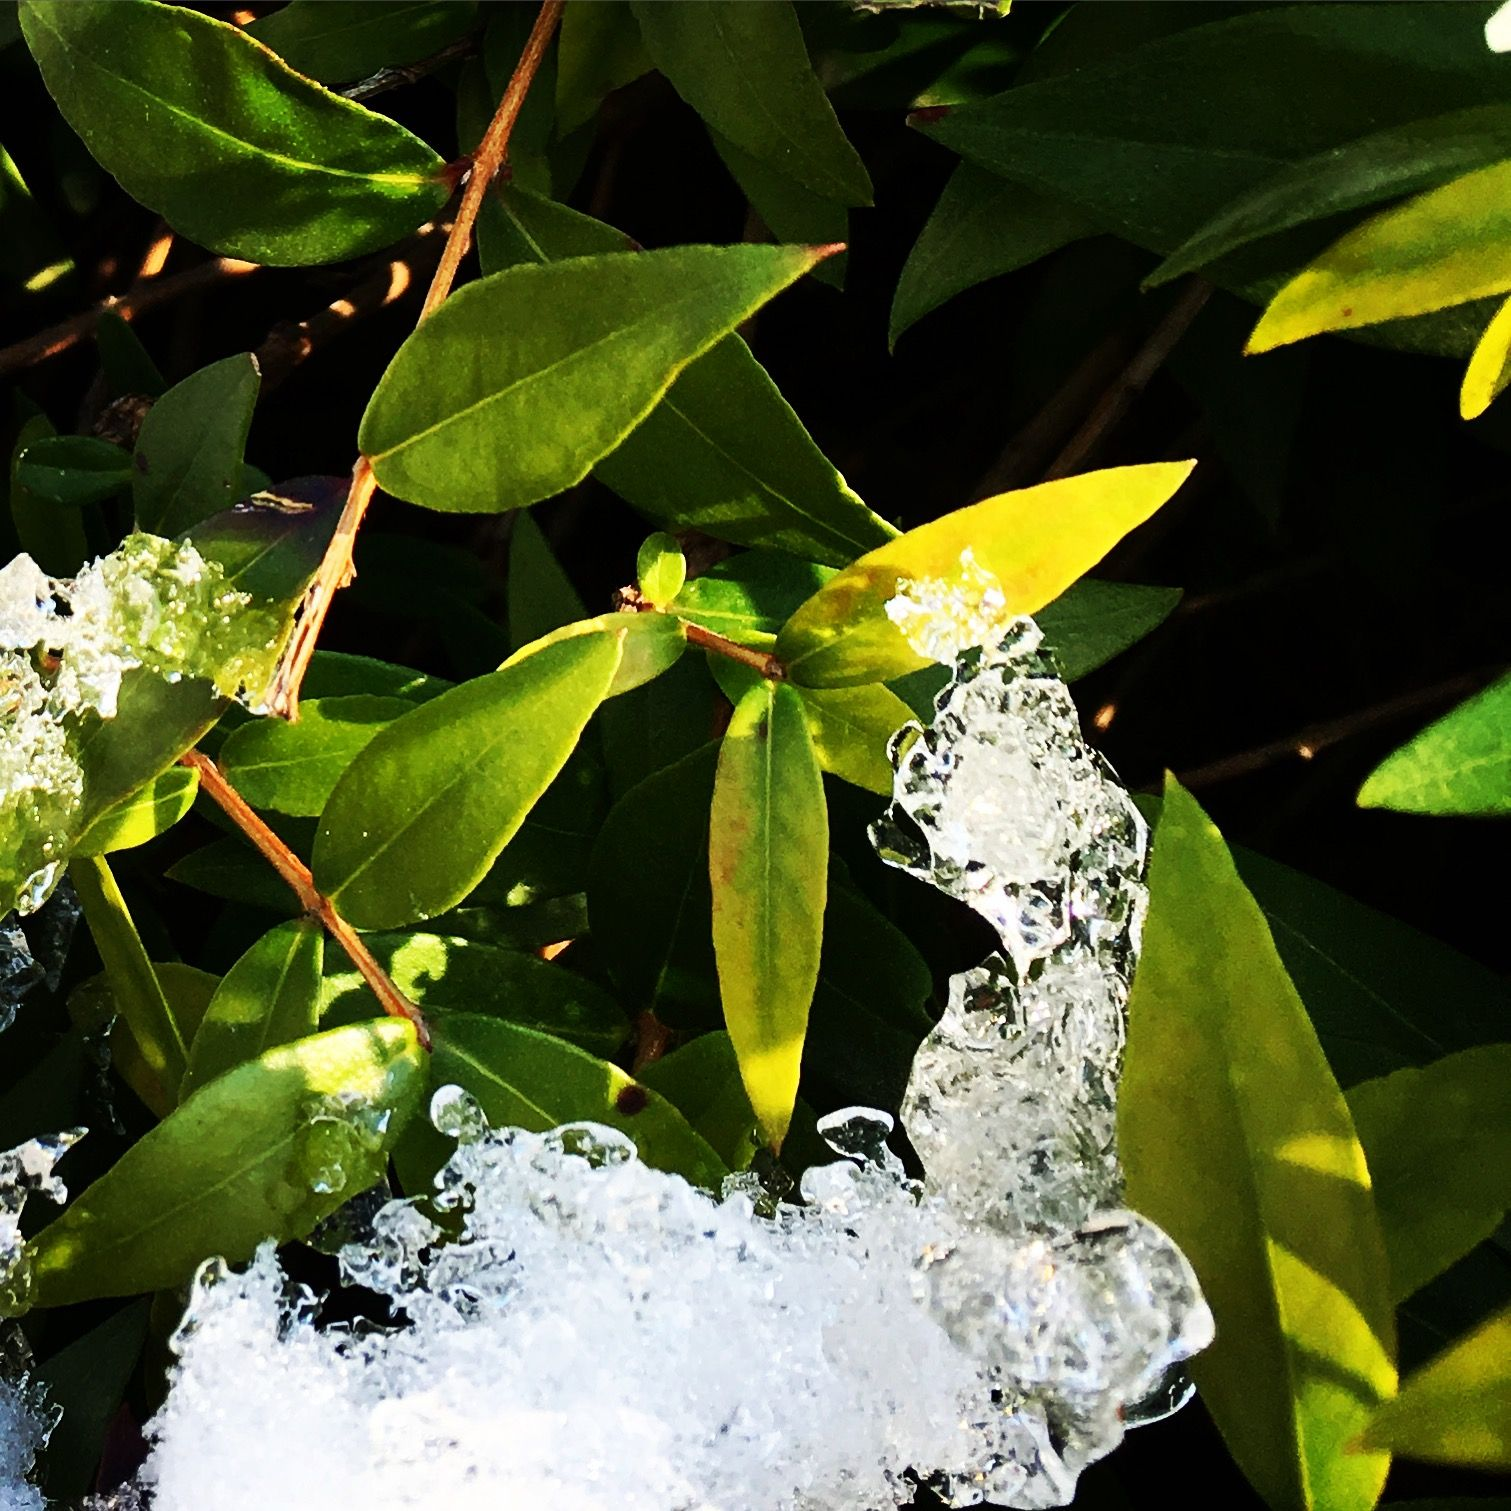 Ice-water #snow #ice #water